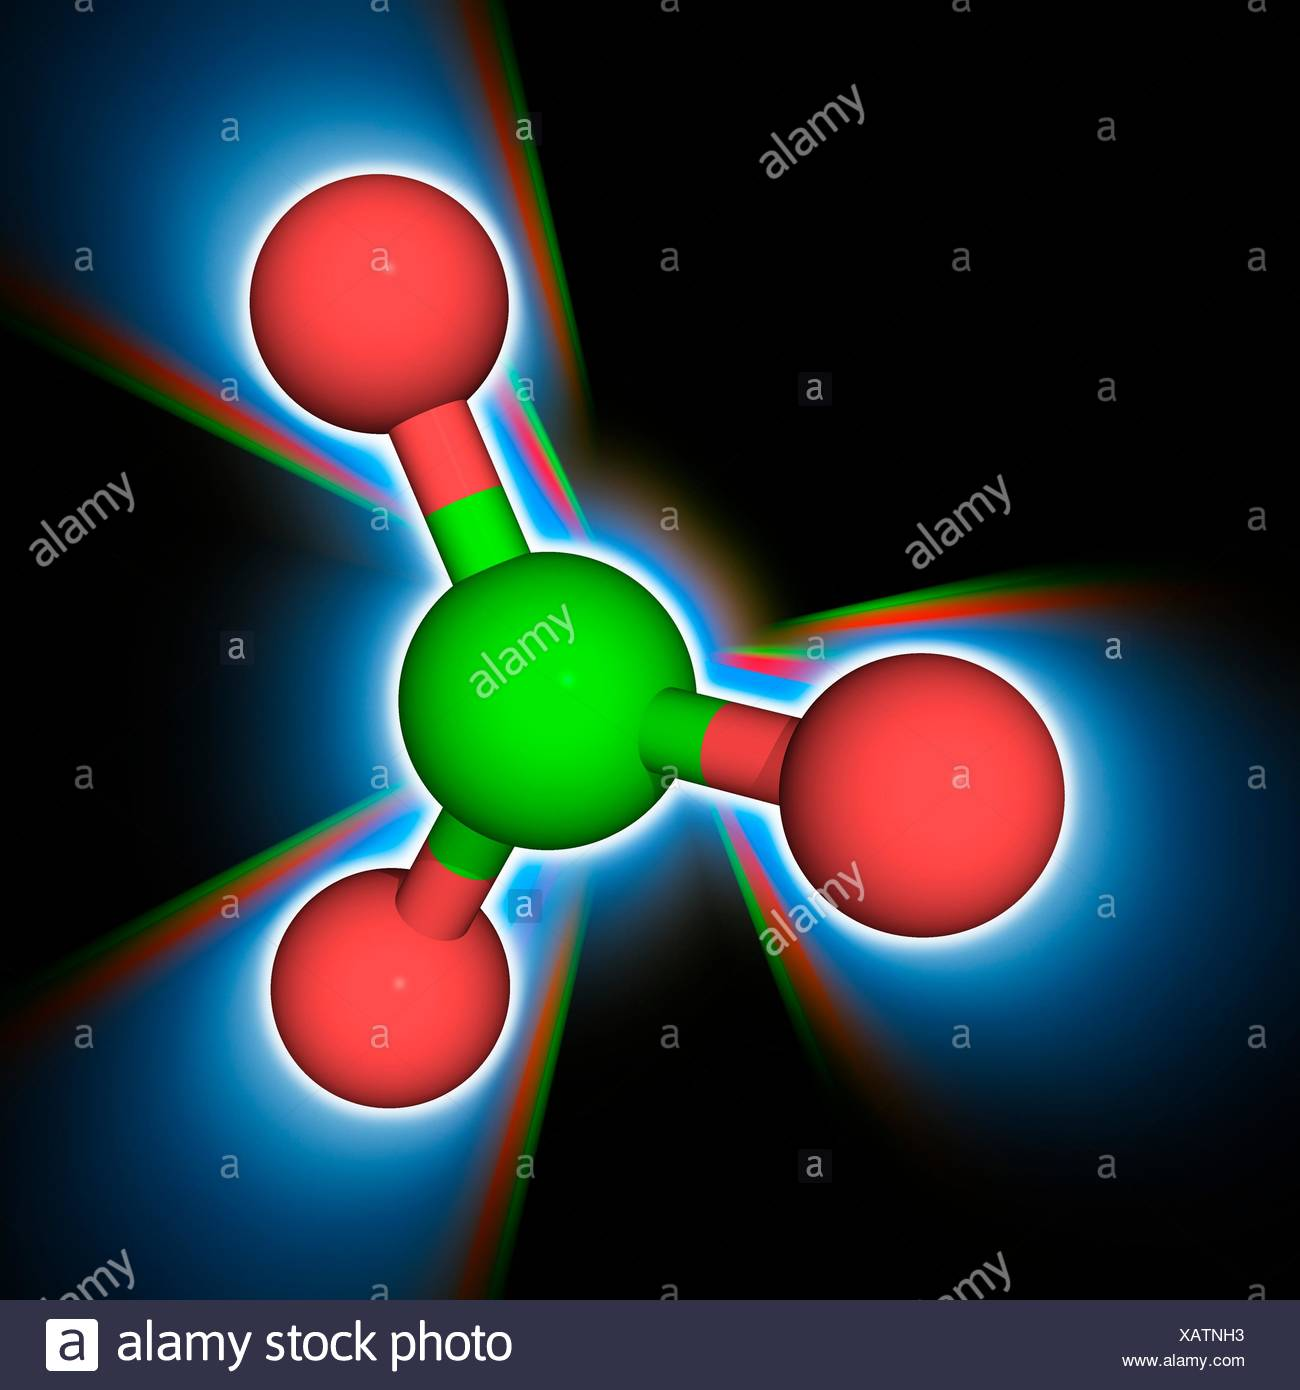 Chlorate ion. Molecular model of the chlorate anion (Cl.O3-). This is a powerful oxidizer and will readily combust with a range of substances. The ion has a trigonal pyramidal structure. Atoms are represented as spheres and are colour-coded: oxygen (red) and chlorine (green). Illustration. Stock Photo